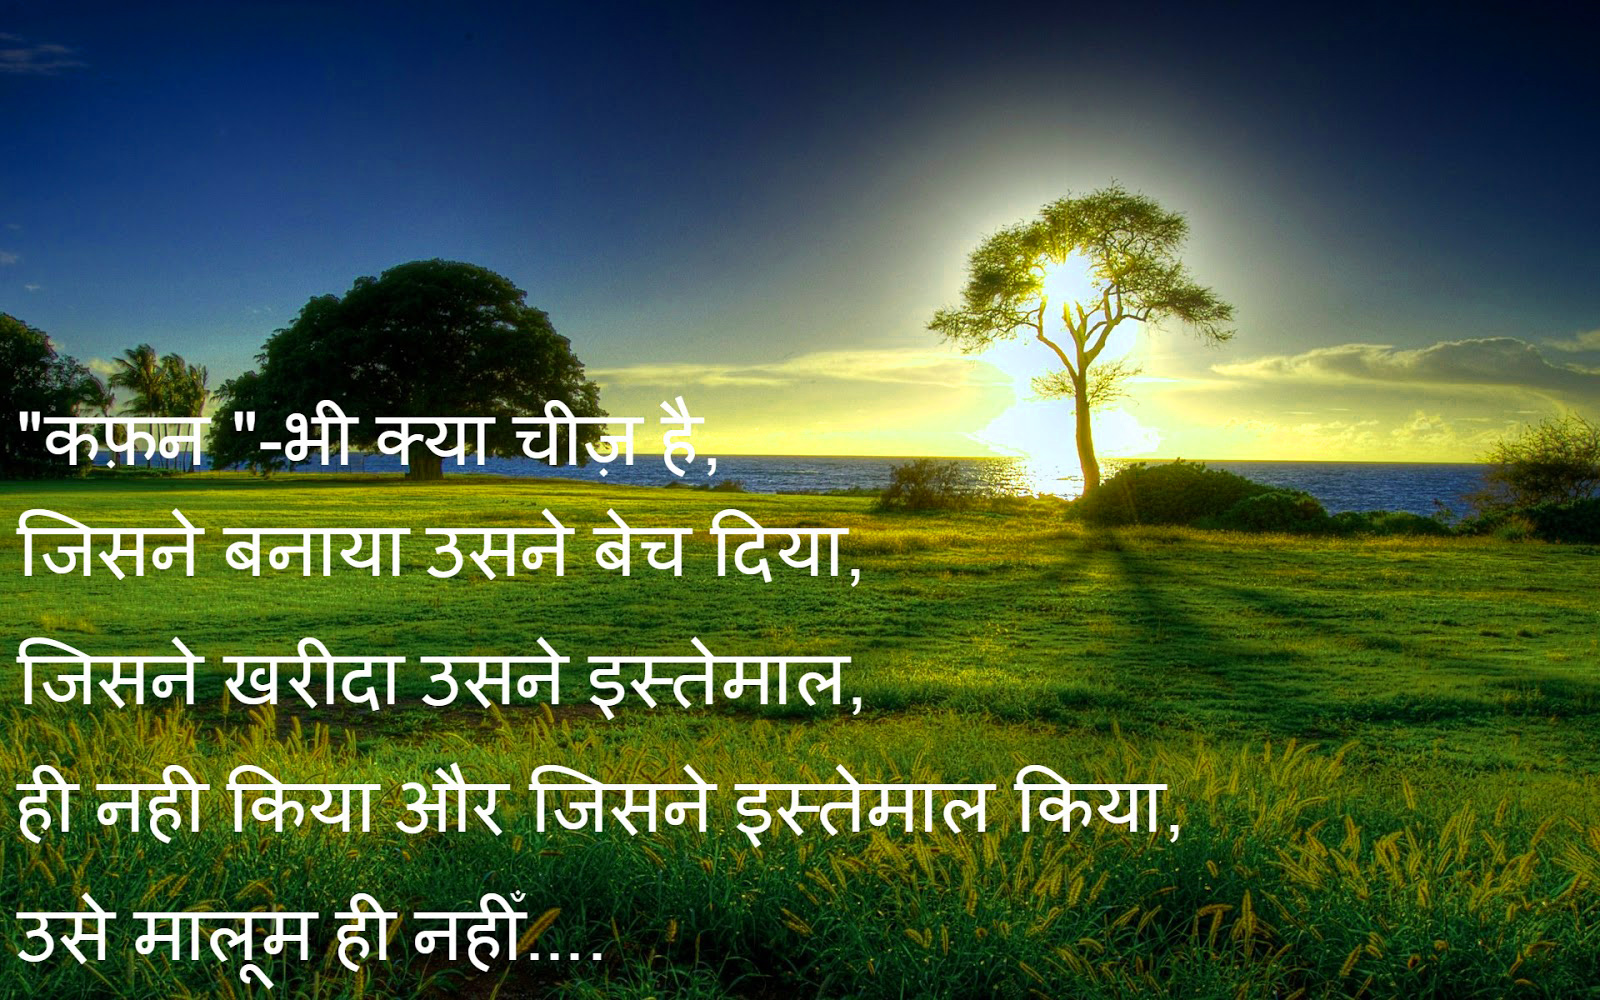 Romantic DP For Whatsapp With Hindi Wallpaper Pics Free Download